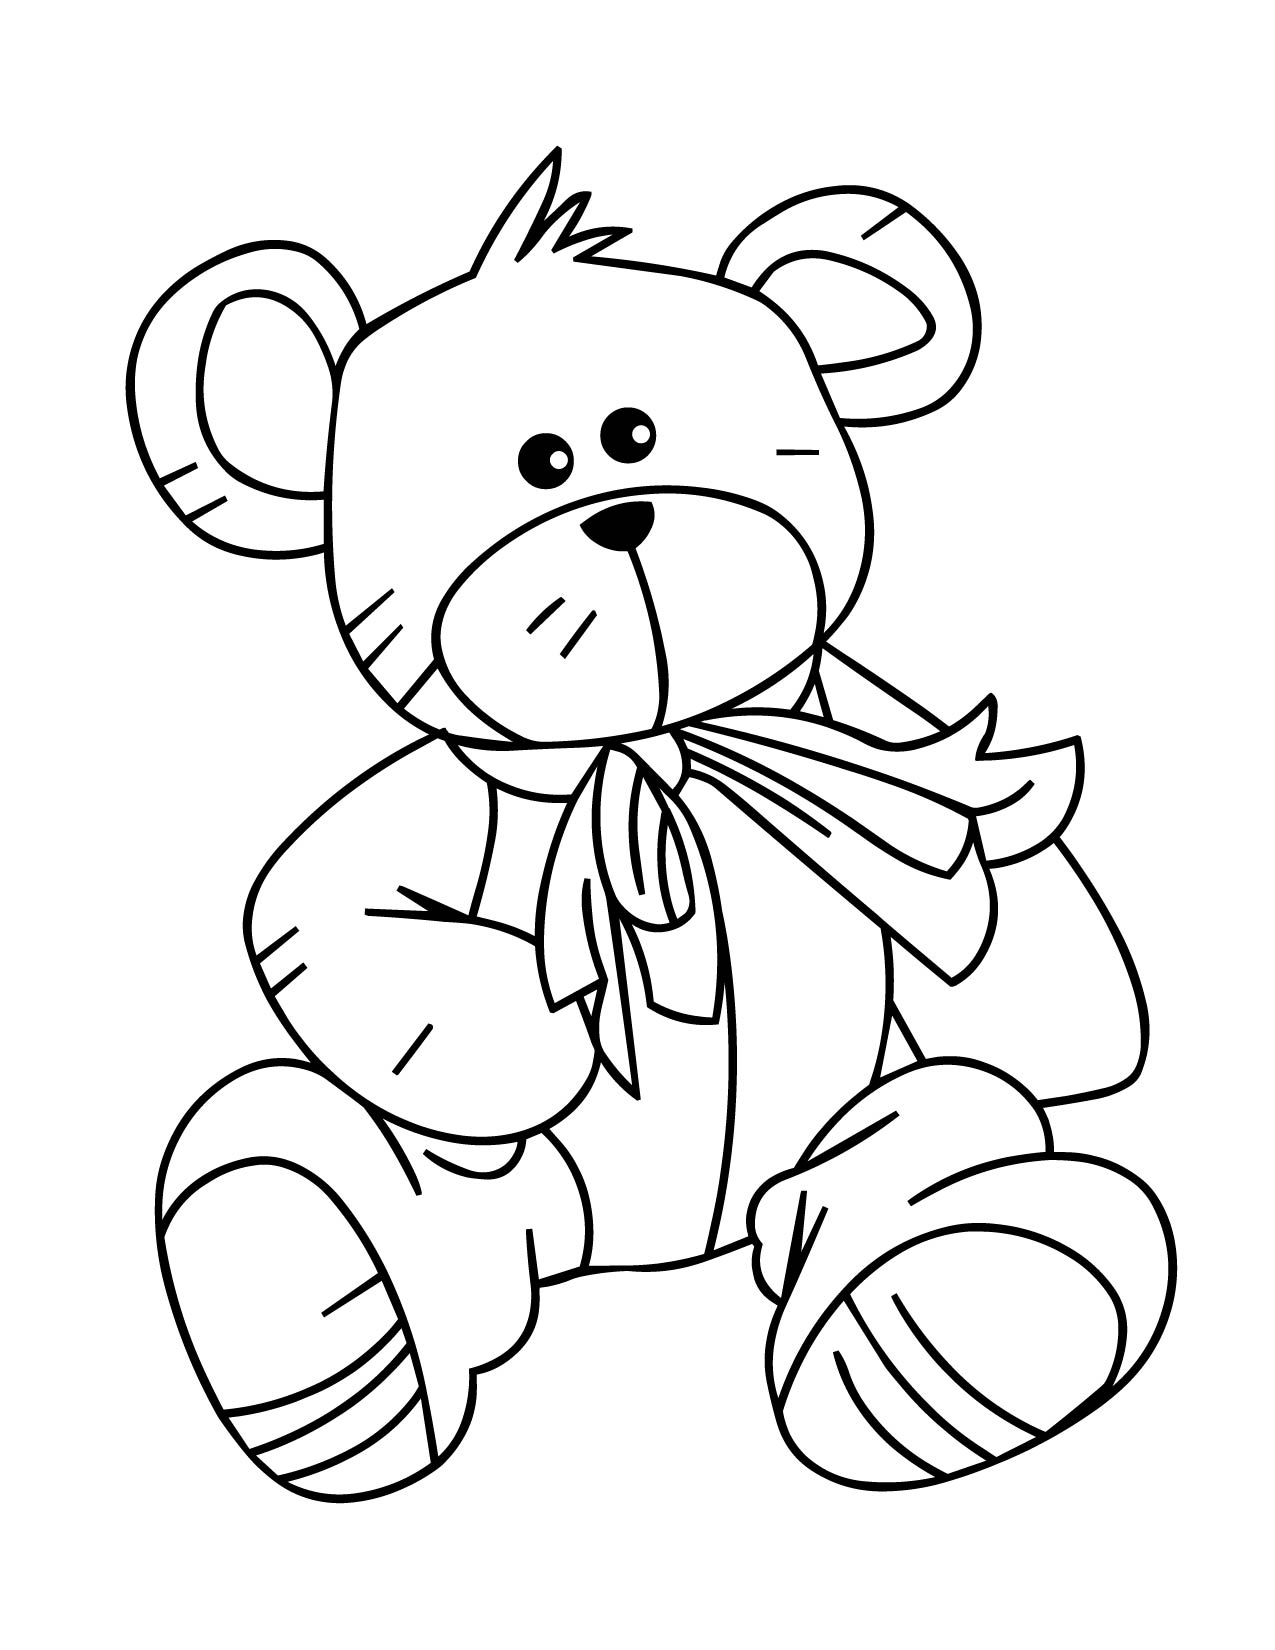 Gambar Mewarnai Boneka : gambar, mewarnai, boneka, Sketsa, Teddy, Bear,, Download, Clipart, Library